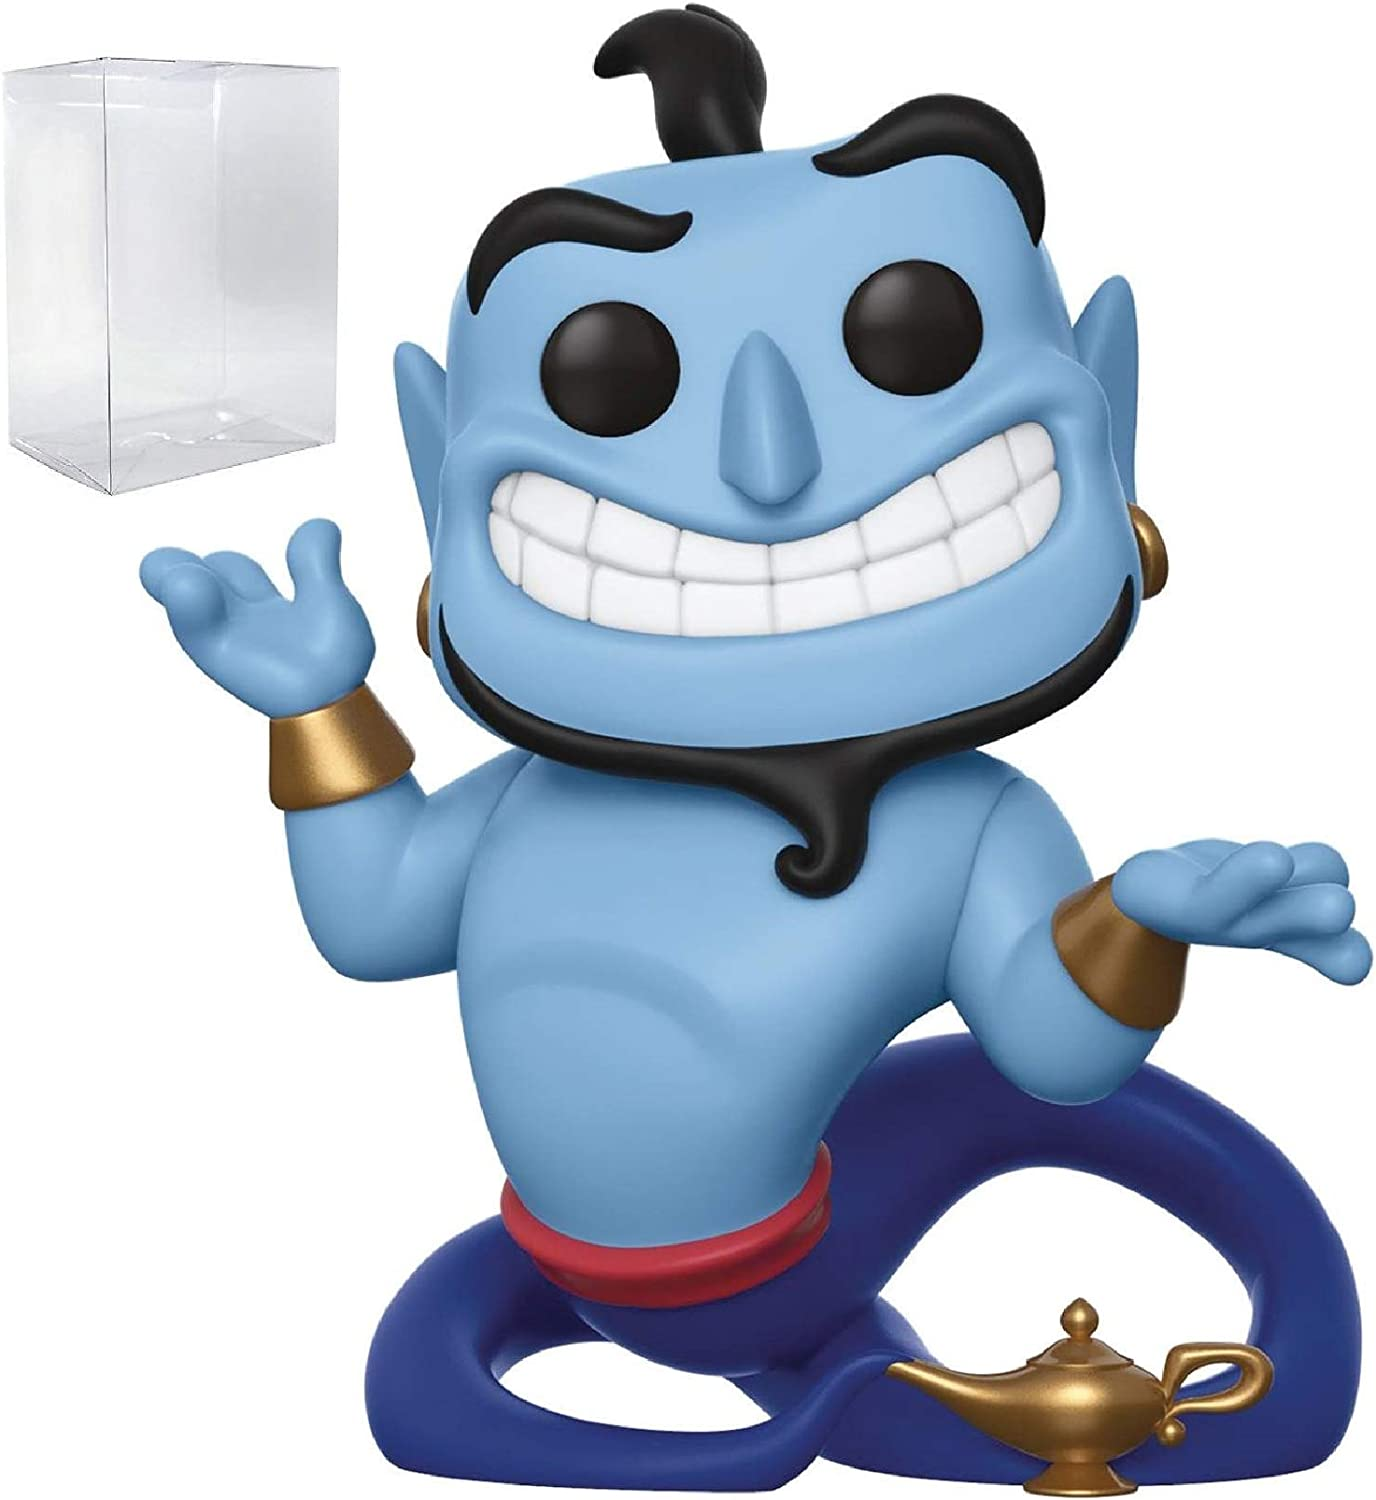 Disney: Aladdin - Genie with Lamp Funko Pop! Vinyl Figure (Includes Pop Box Protector Case)